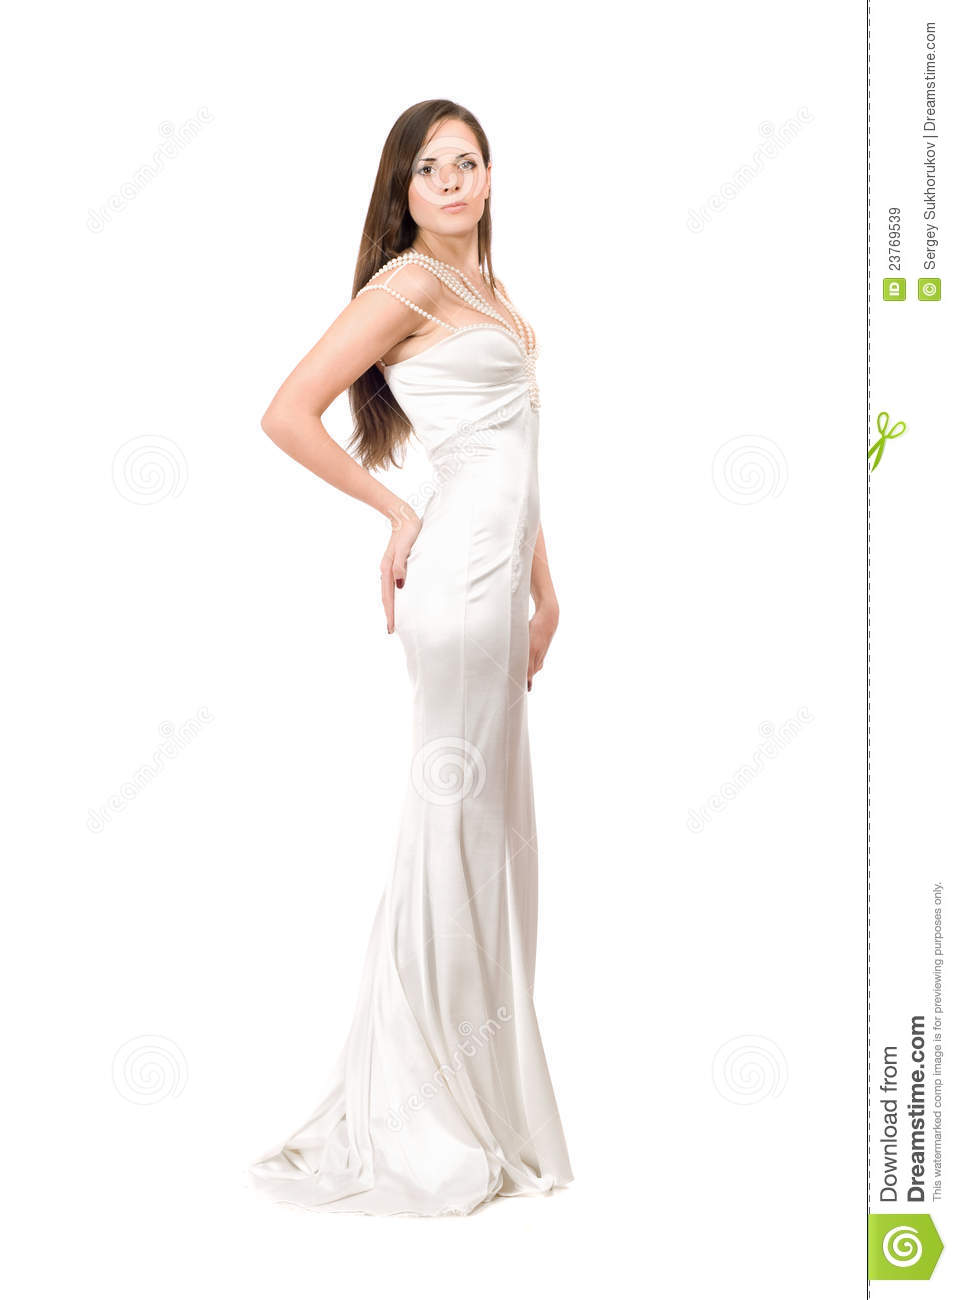 https://thumbs.dreamstime.com/z/perfect-young-woman-wedding-dress-23769539.jpg